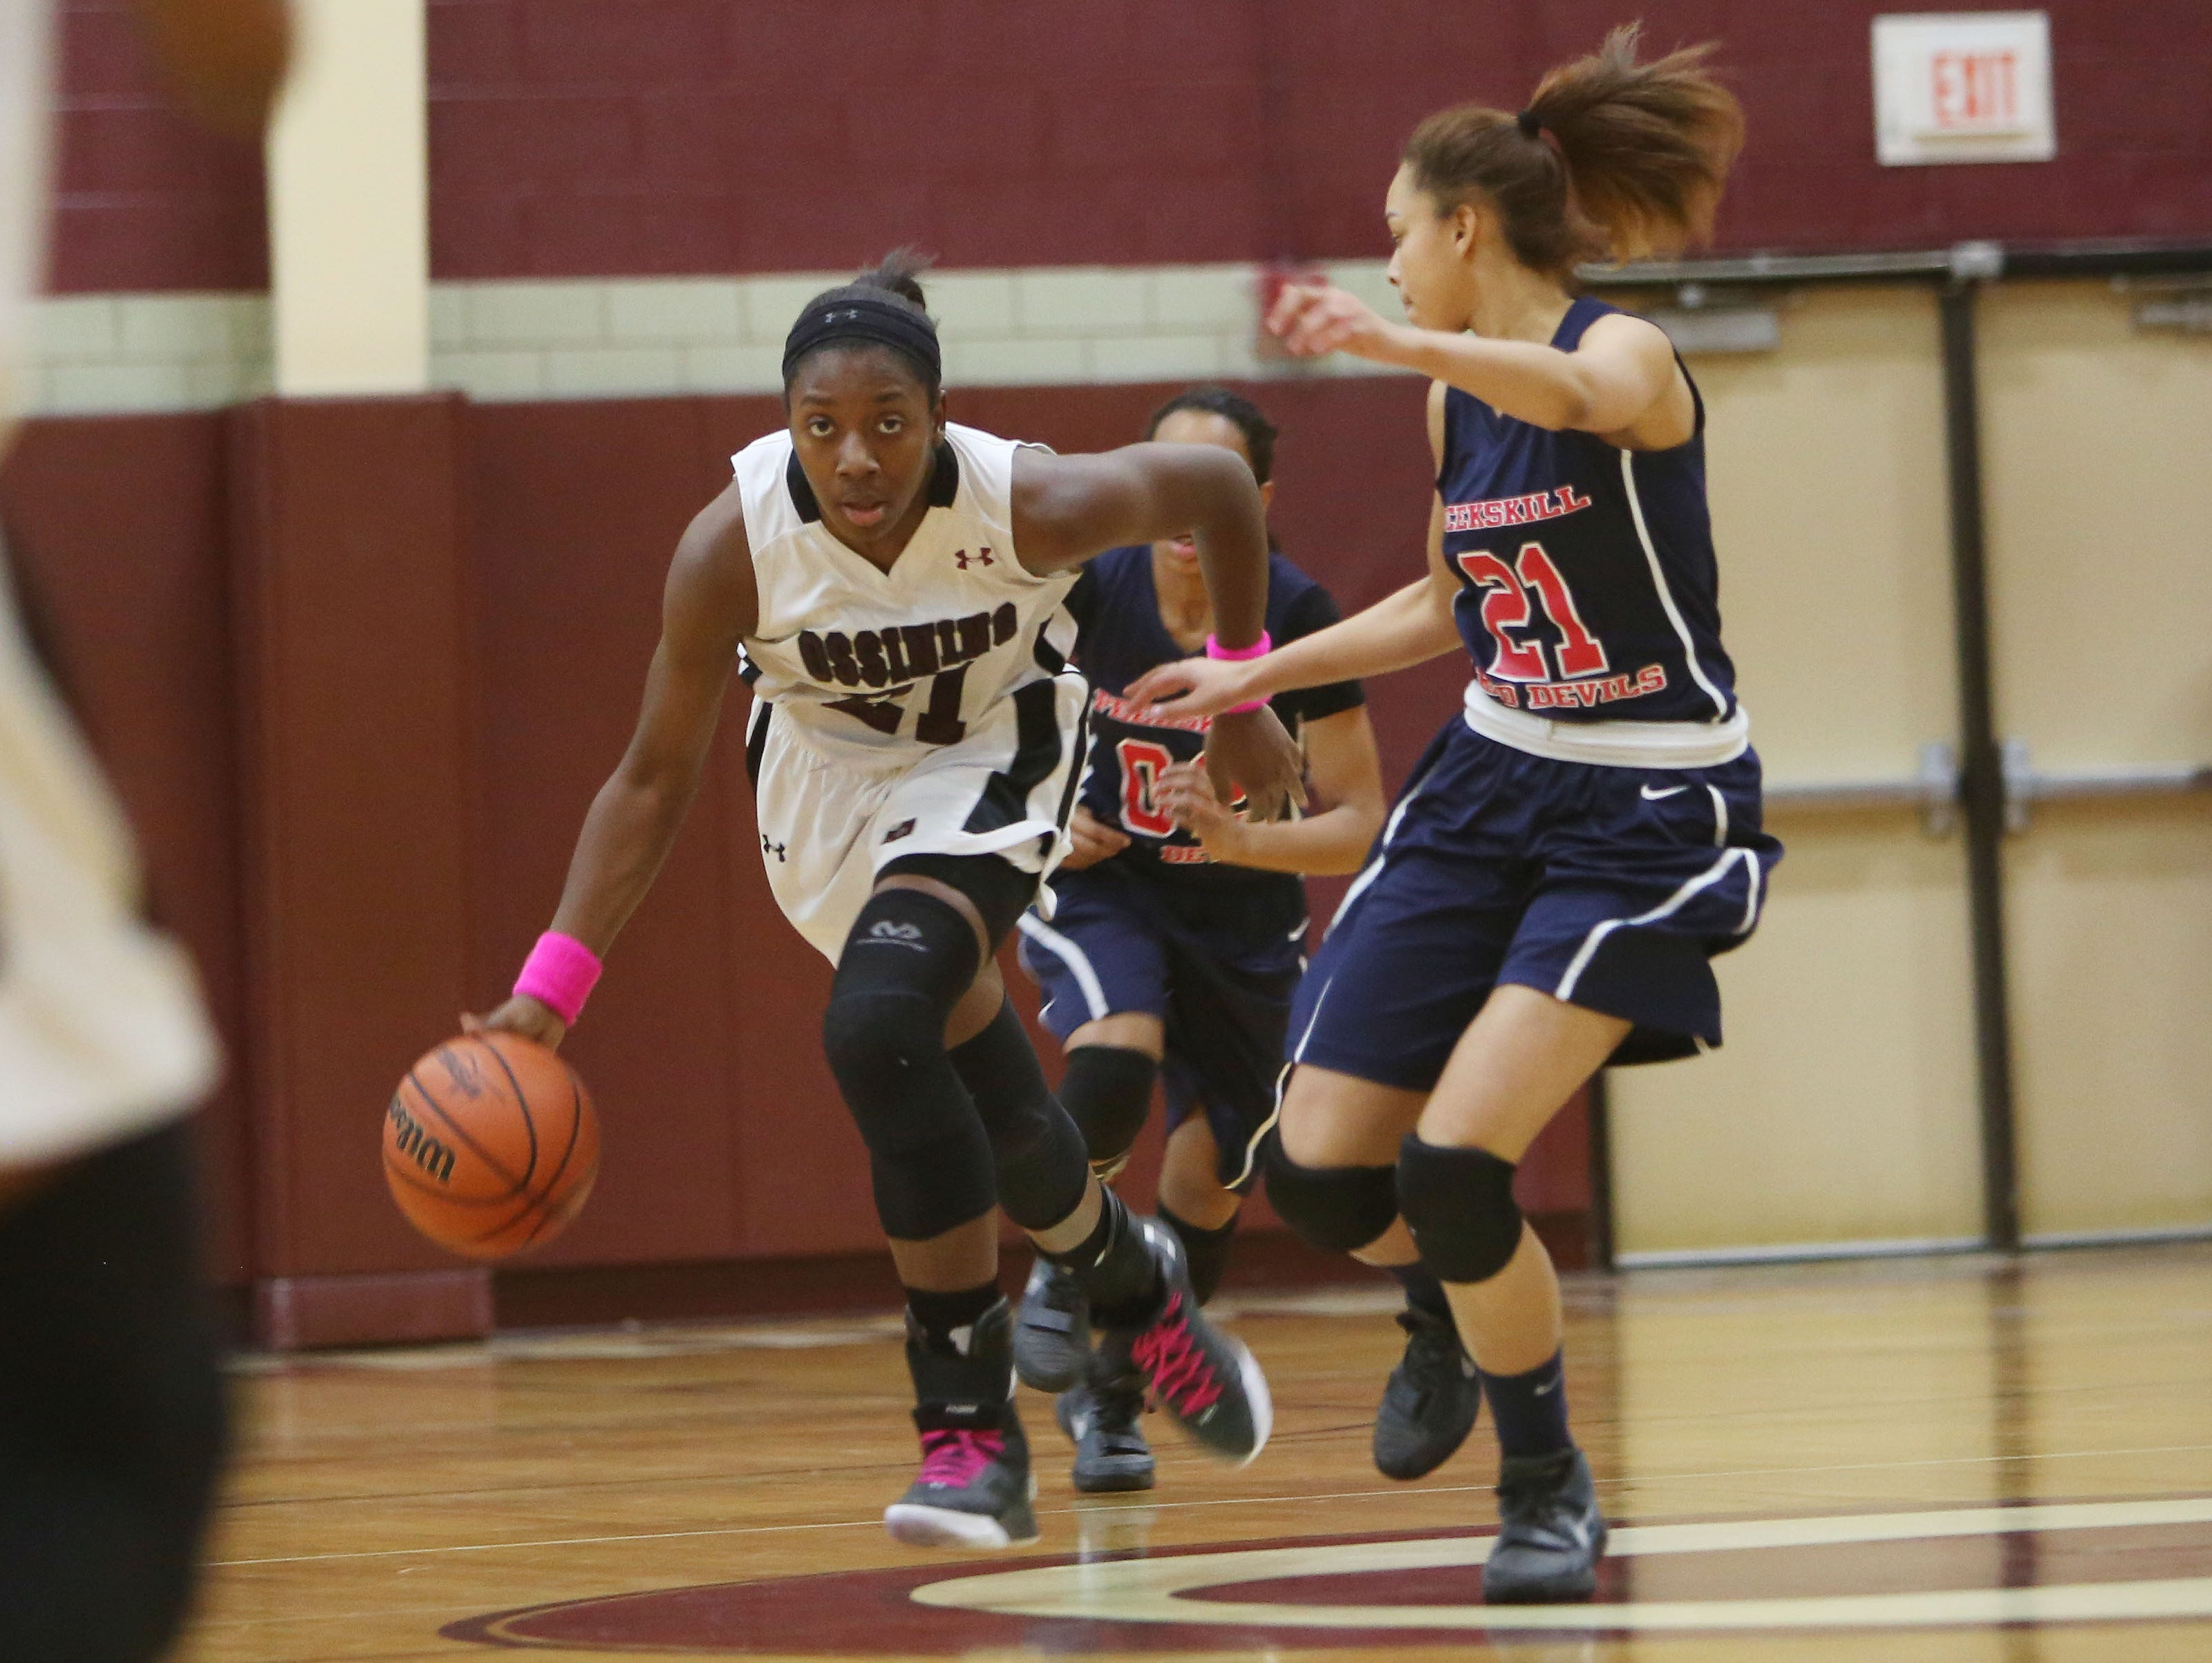 Ossining defeated Peekskill 103-76 in a girls basketball game at Ossining High School Feb. 2, 2016.